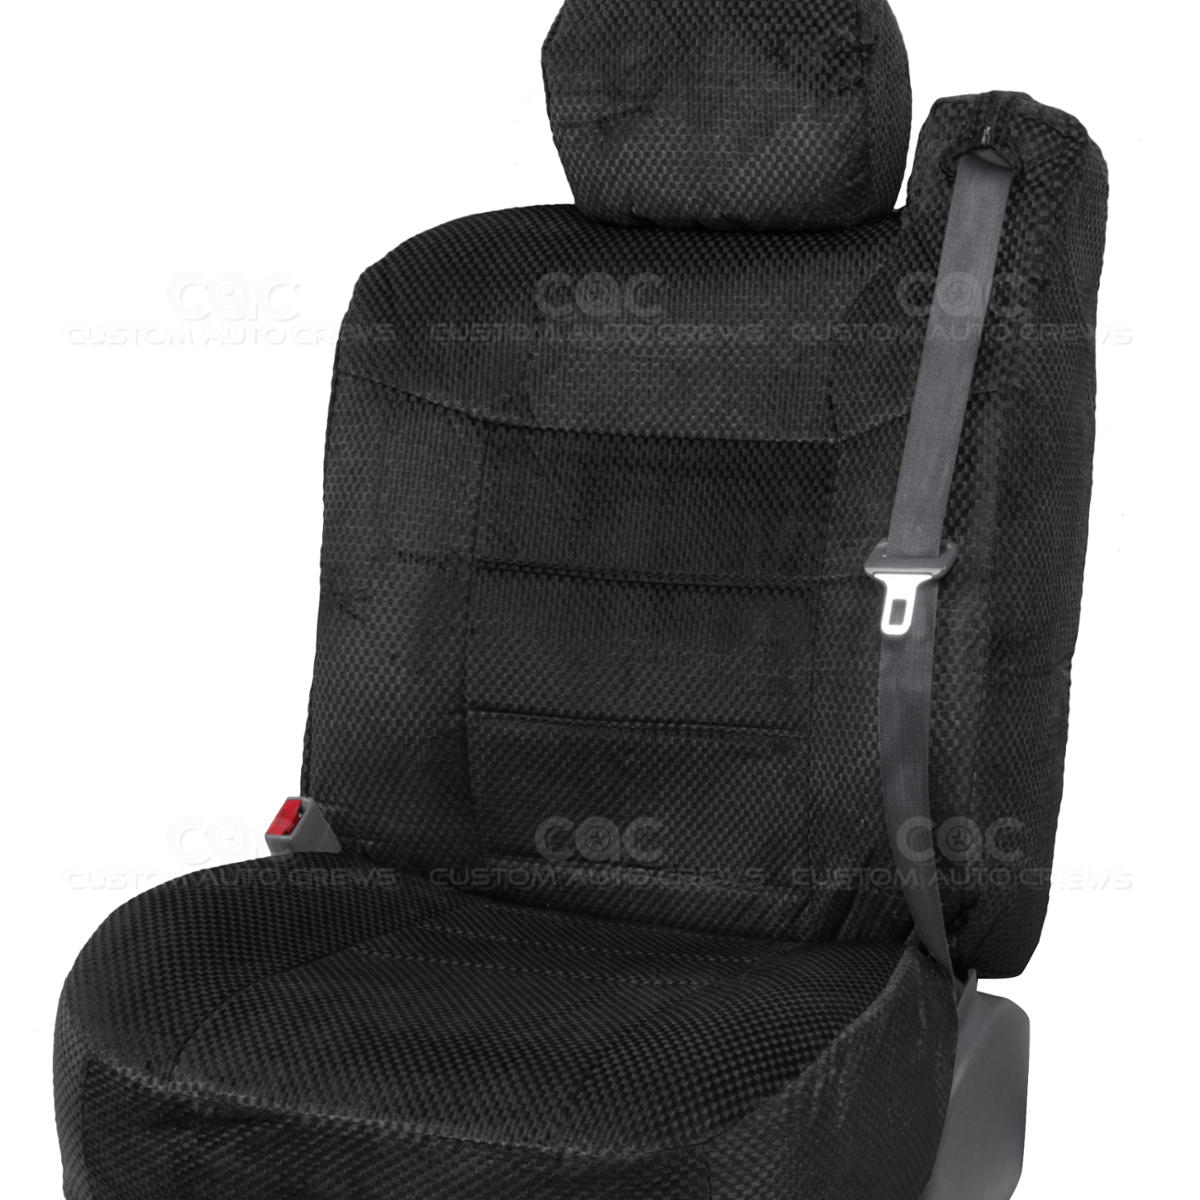 Truck Seat Covers Front Pair Black Scottsdale Built In